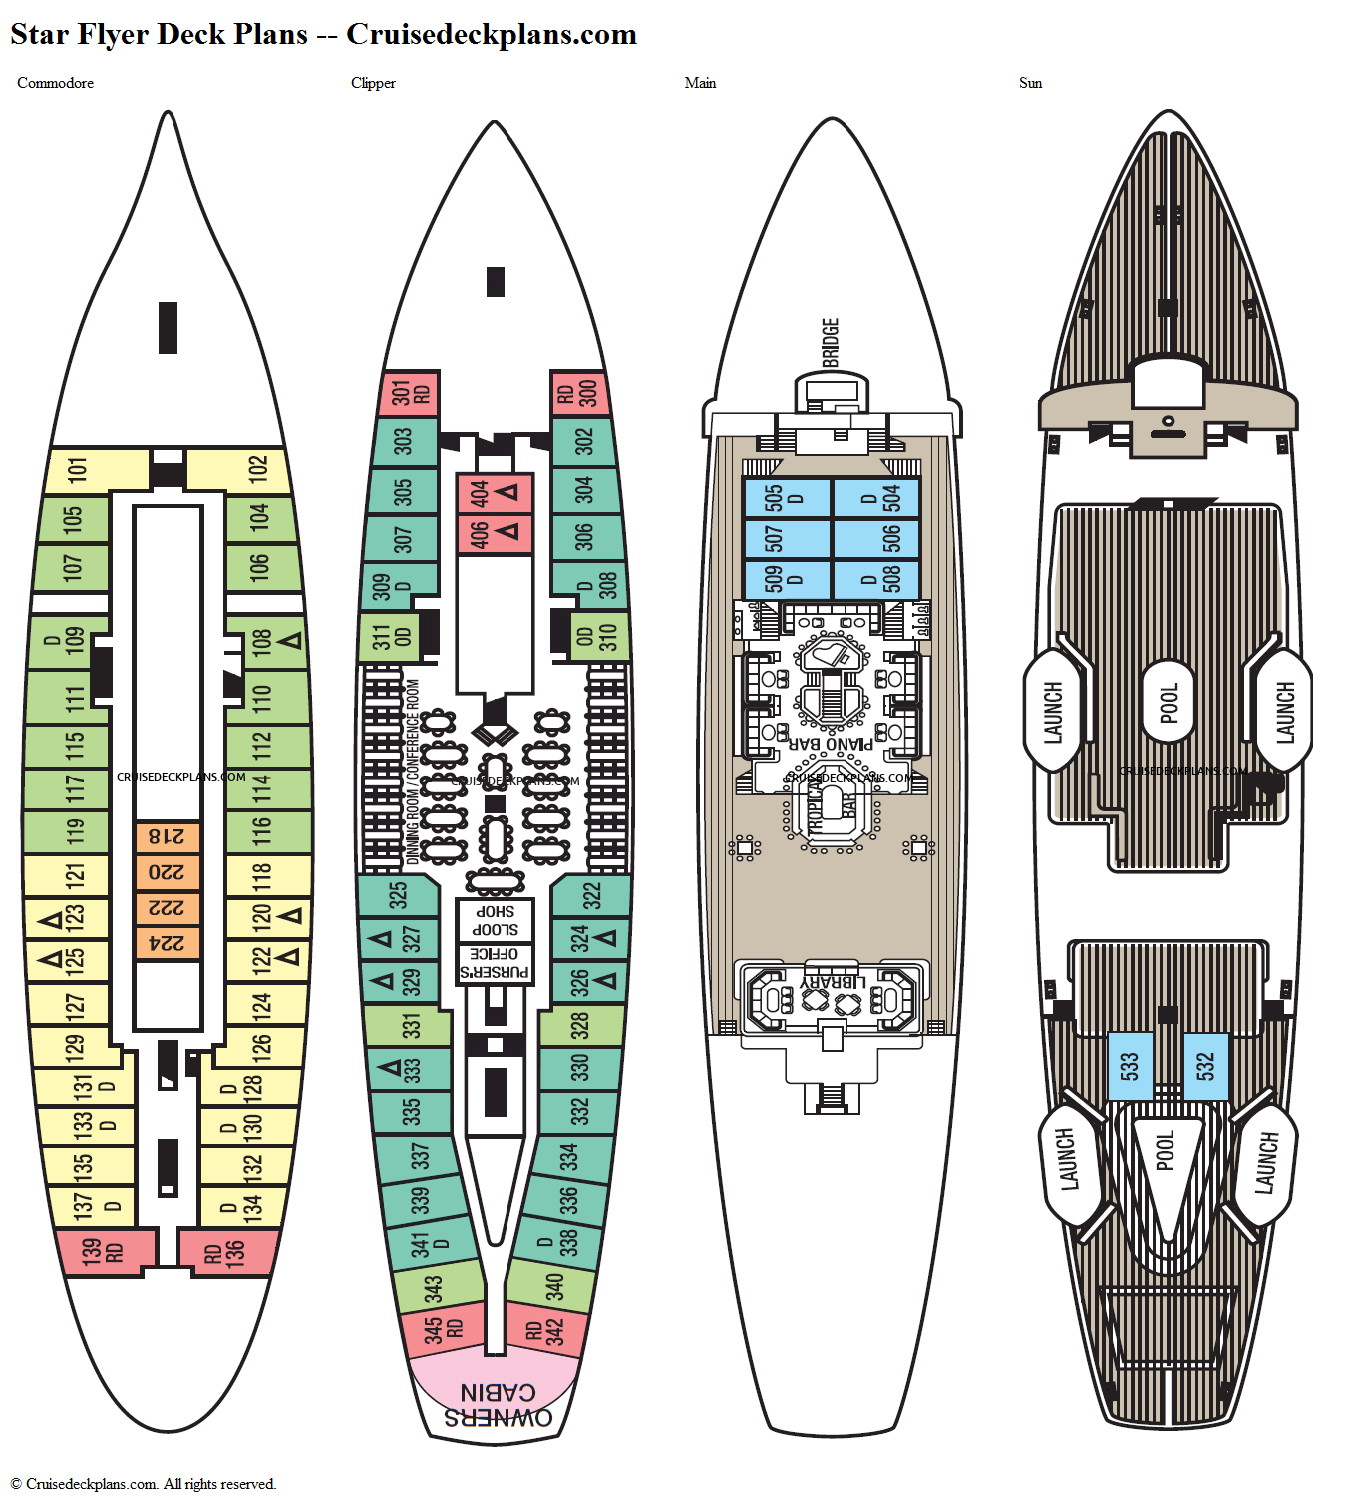 Star Flyer deck plans image